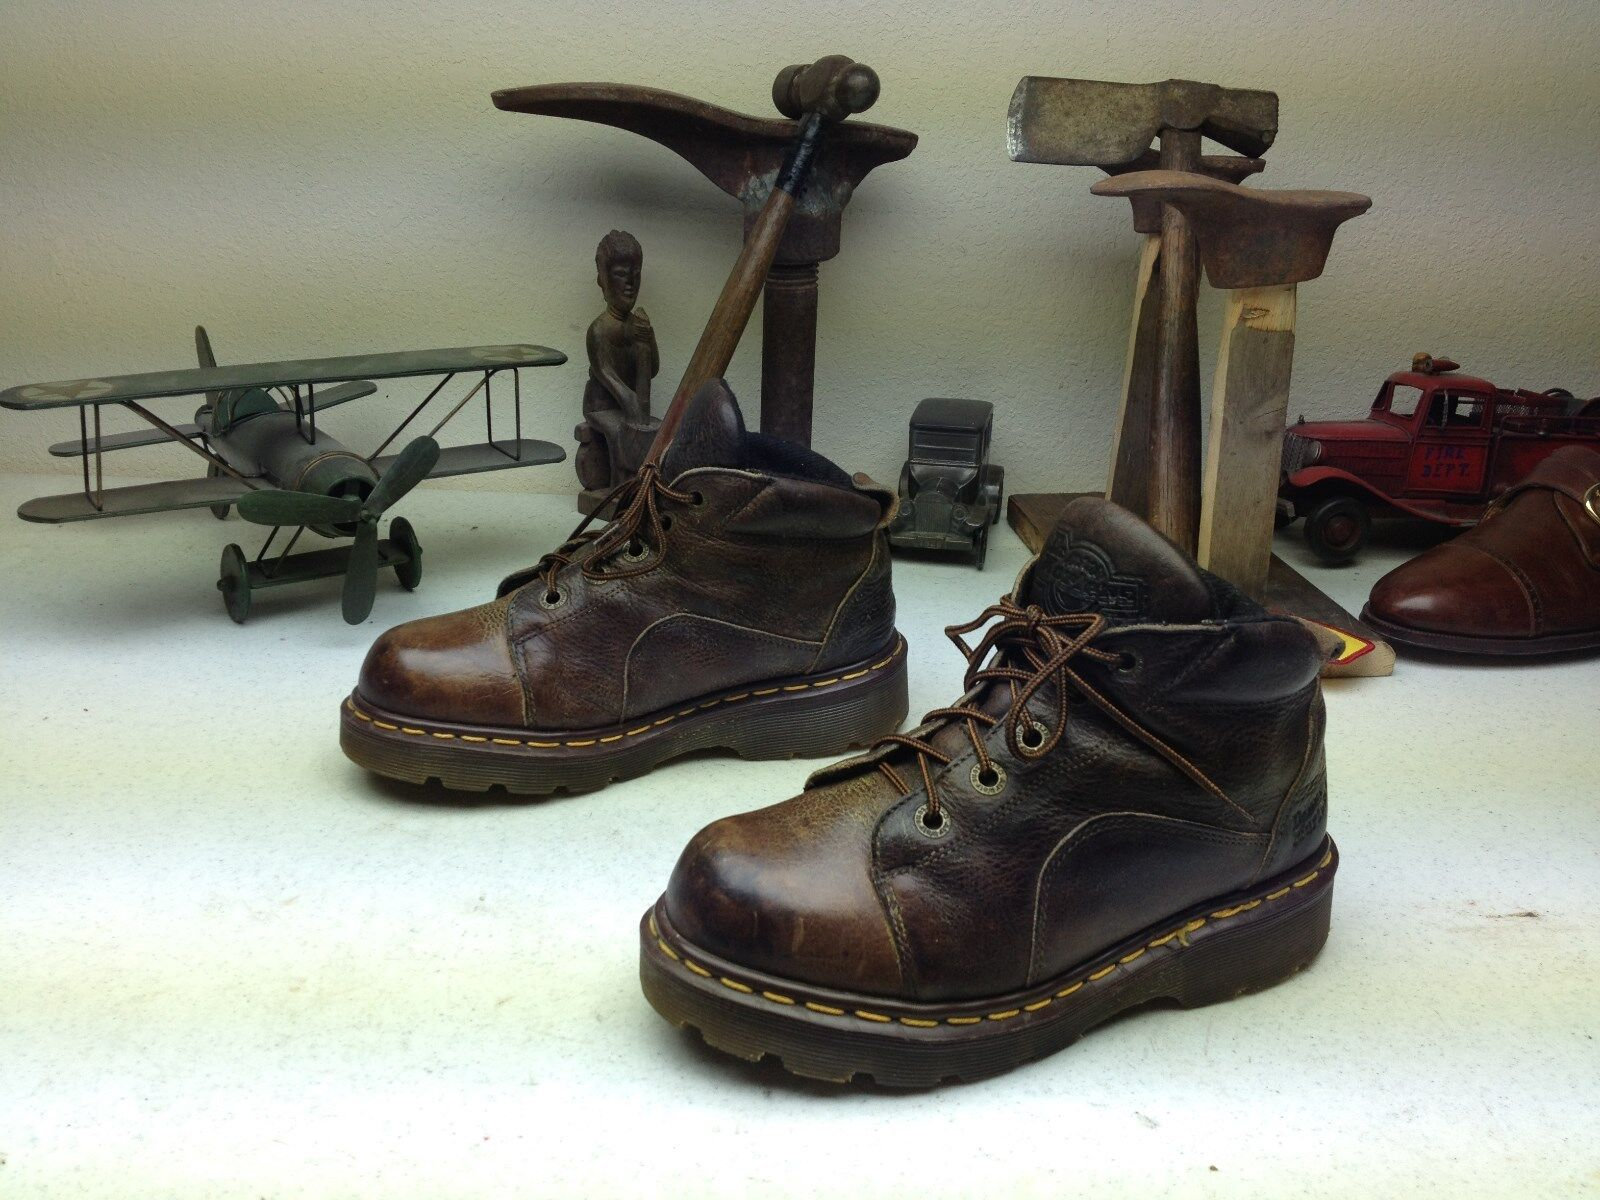 MADE IN ENGLAND BROWN DISTRESSED DR MARTENS LEATHER LACE UP BOOTS SIZE 5-5.5M